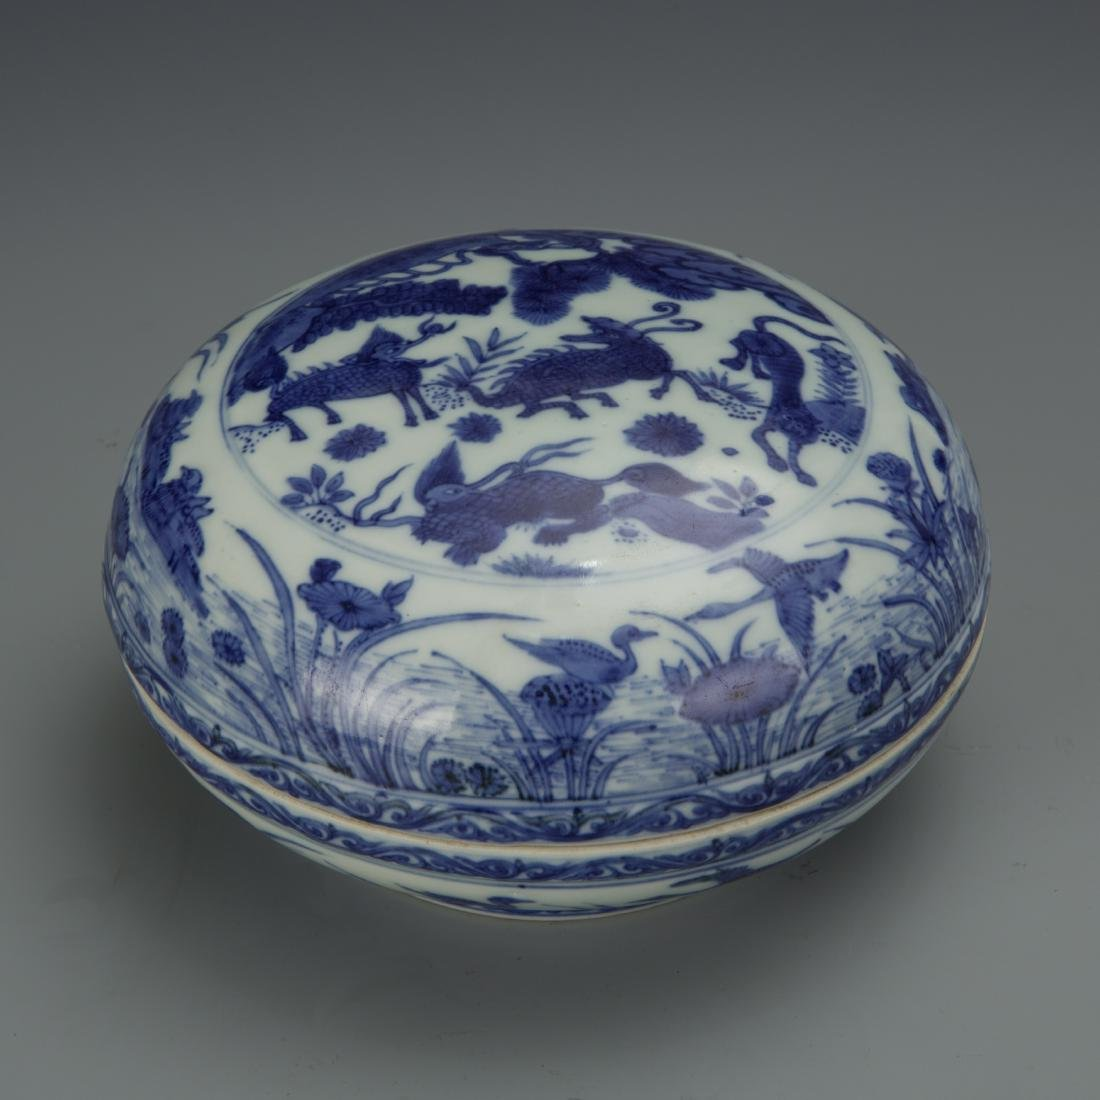 Blue and White Porcelain Box with Mark